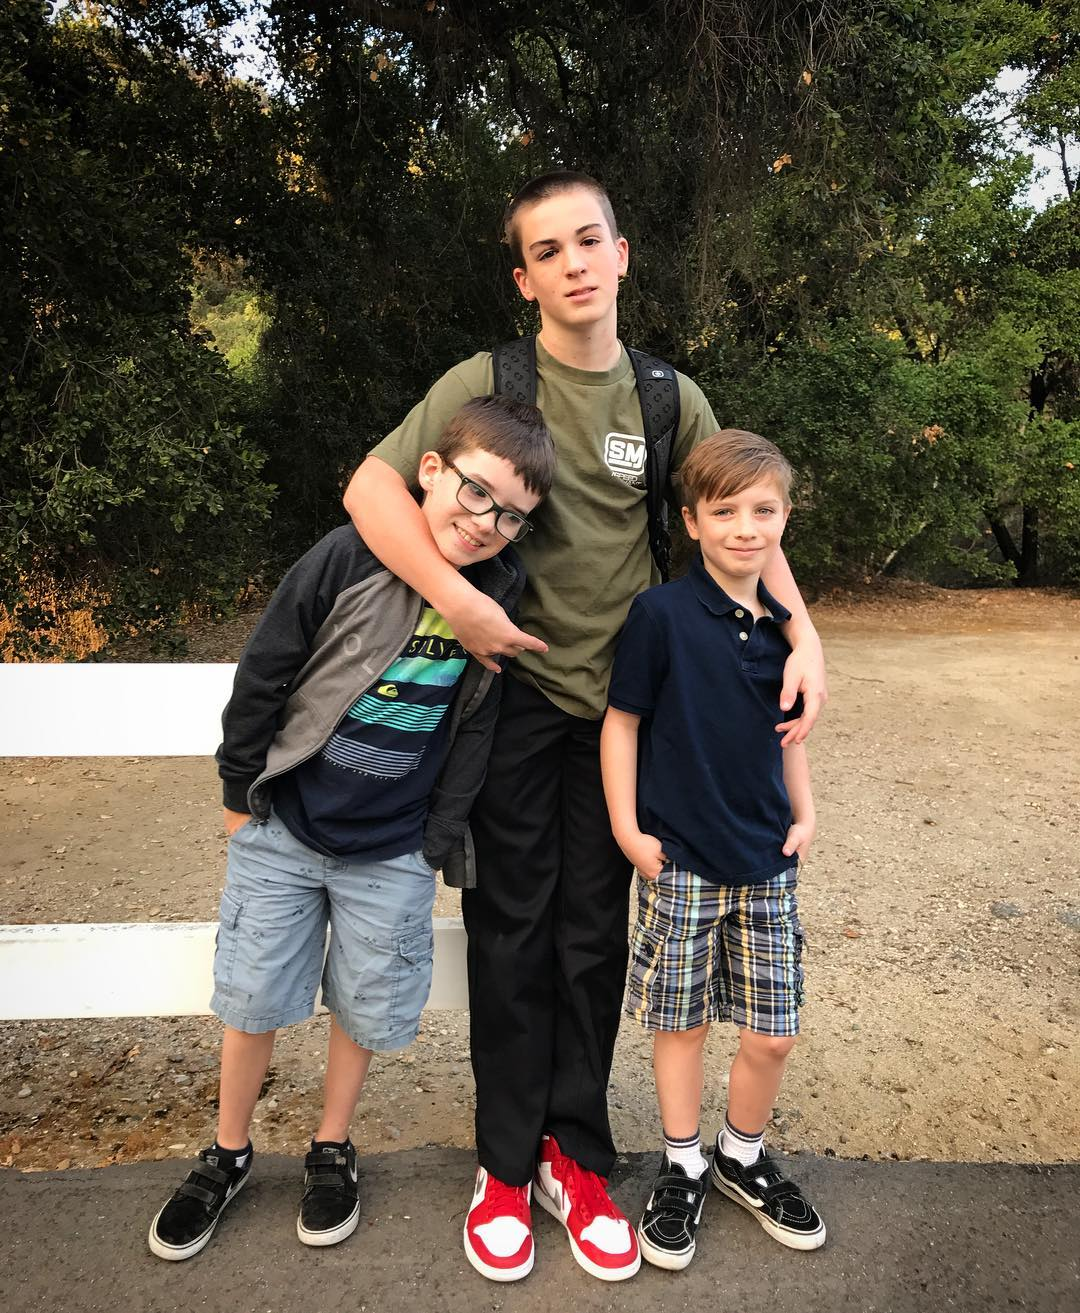 Holly Marie Combs all three sons standing together. Her eldest son Finley Arthur is embracing Riley Edward and Kelly James in either sides.